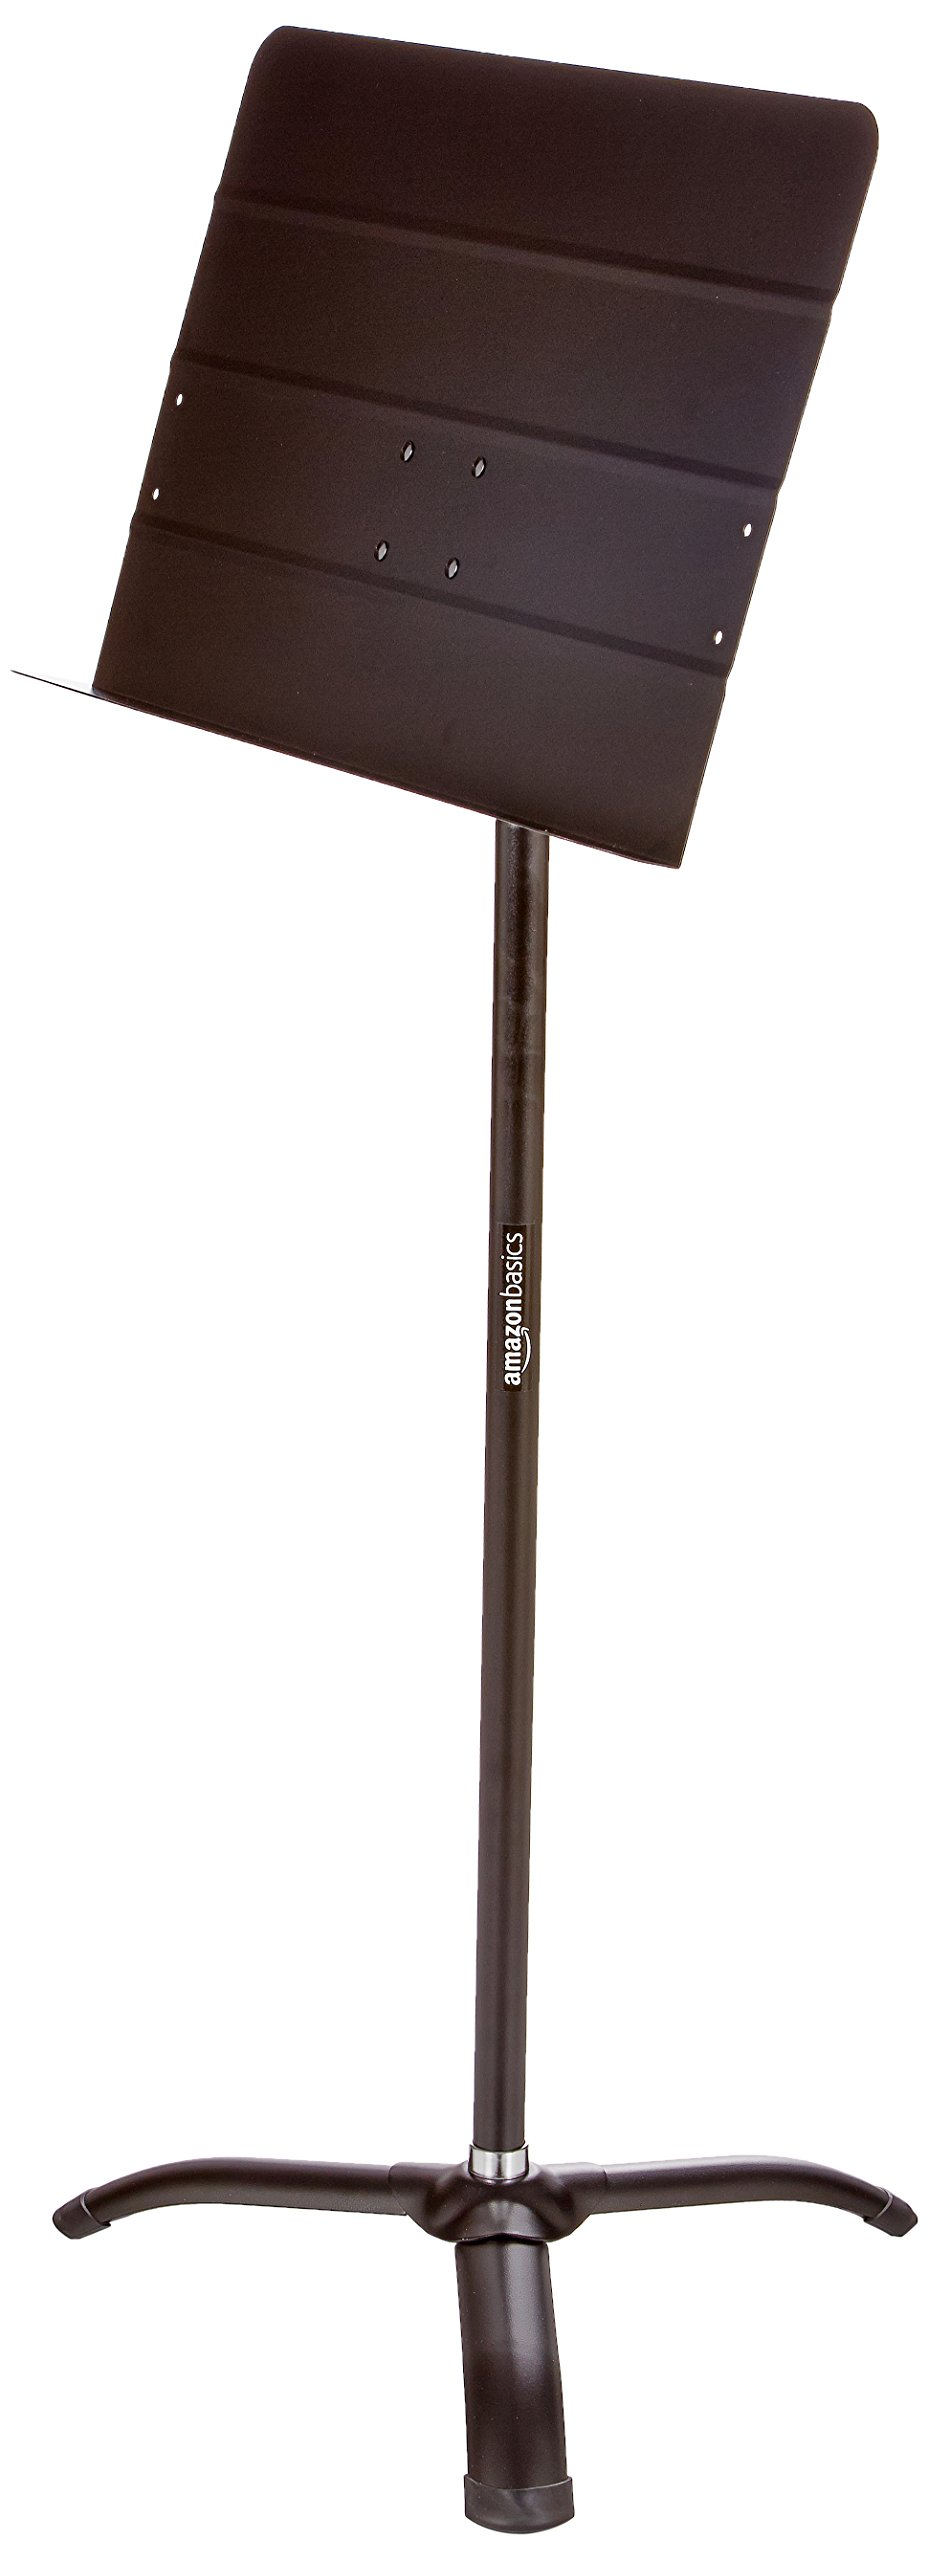 AmazonBasics Portable Sheet Music Stand - Black by AmazonBasics